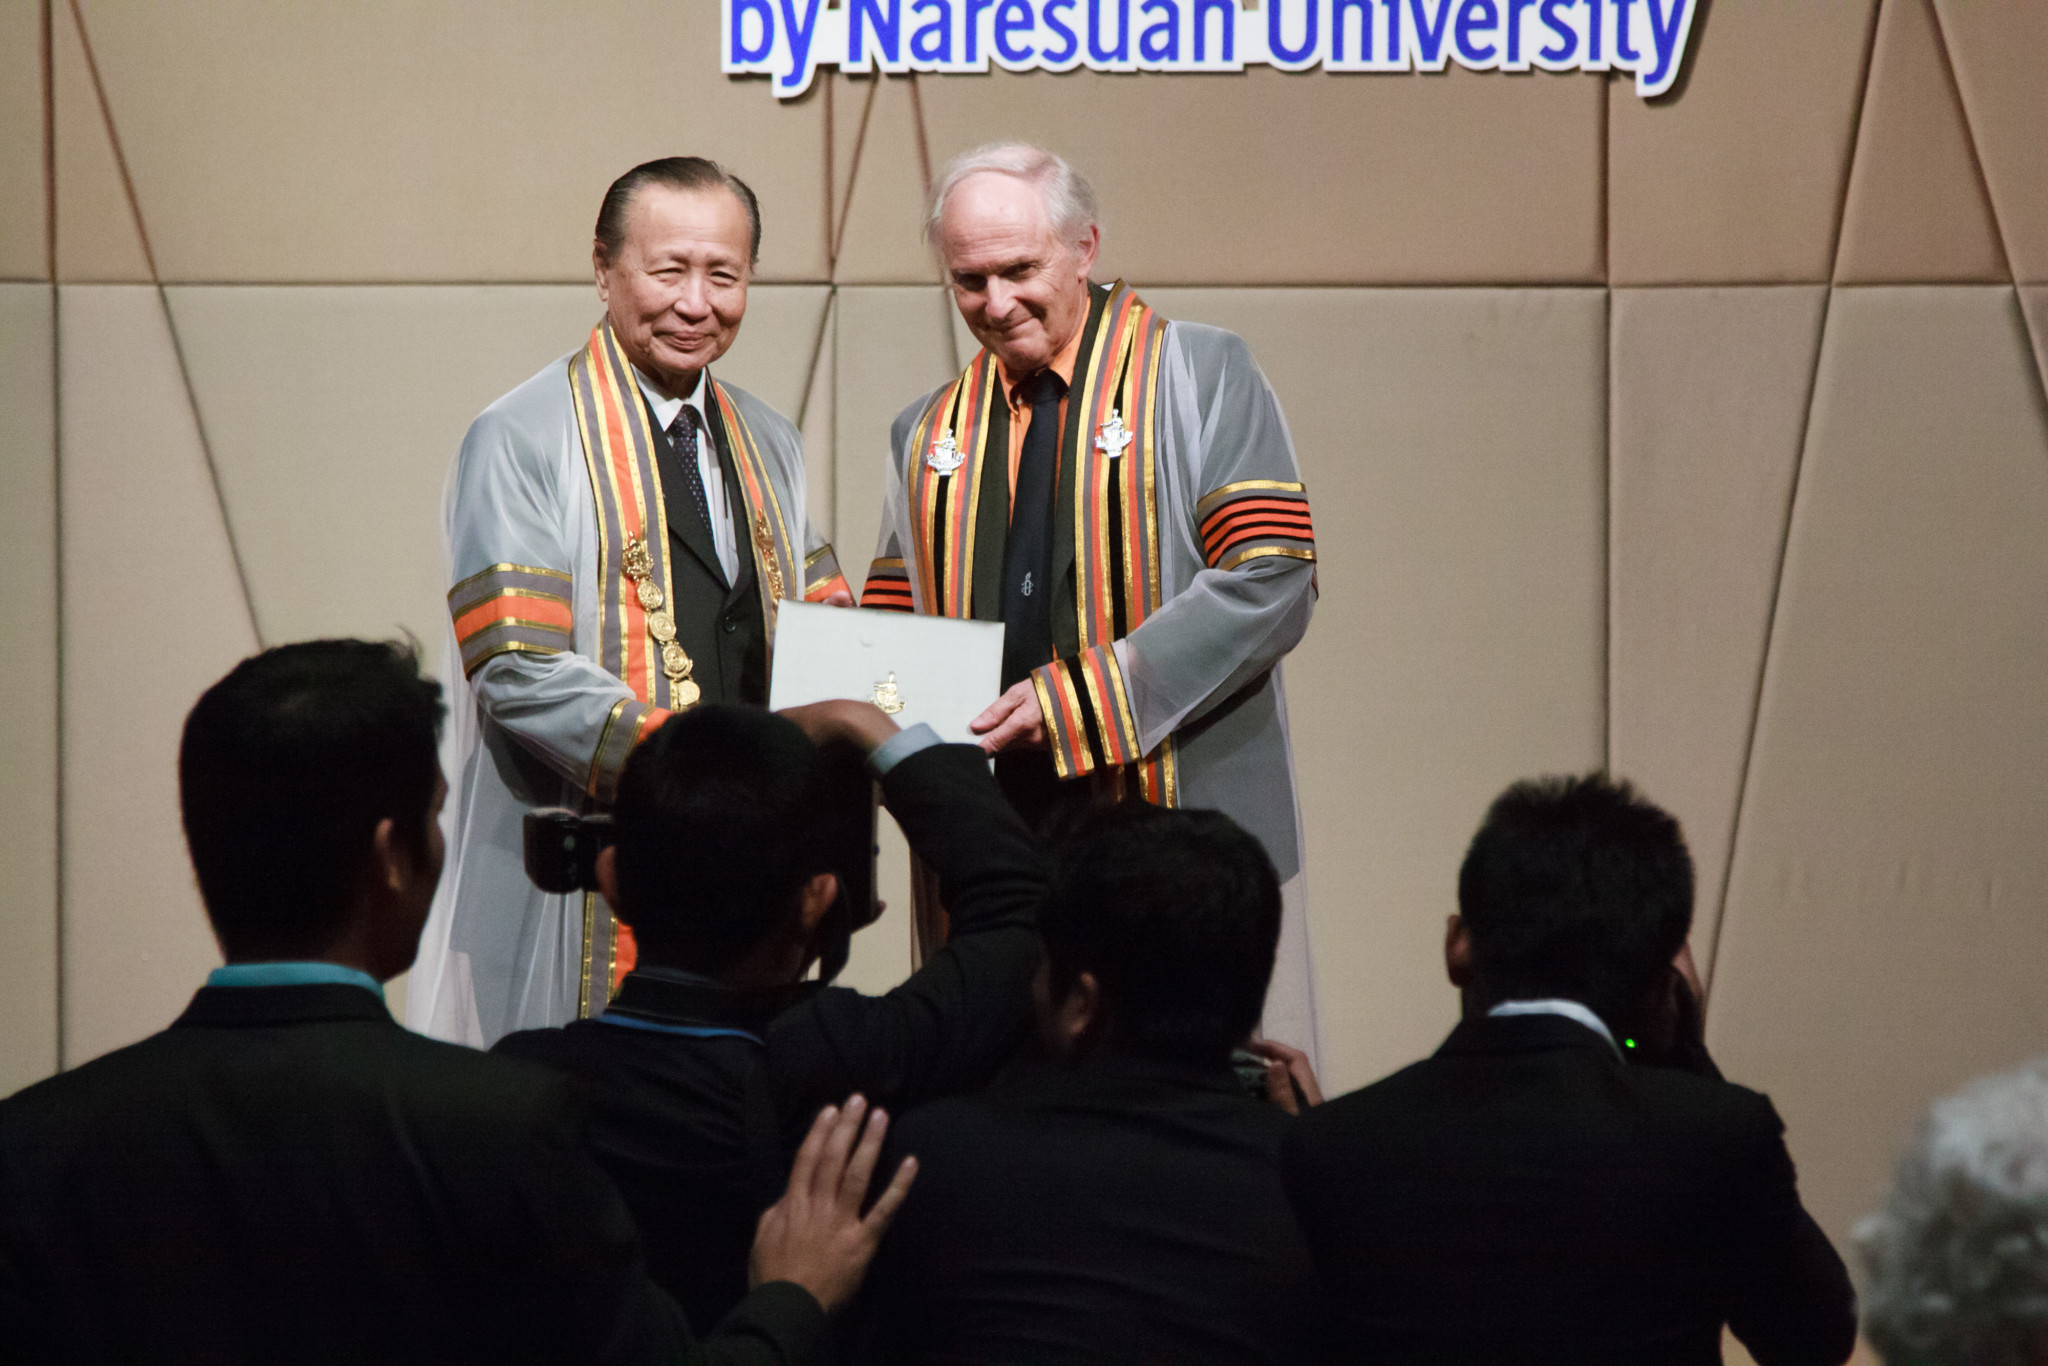 Chemistry Nobel Laureate Prof. Sir Harold W. Kroto being conferred an honorary doctorate degree by Naresuan University in Bangkok